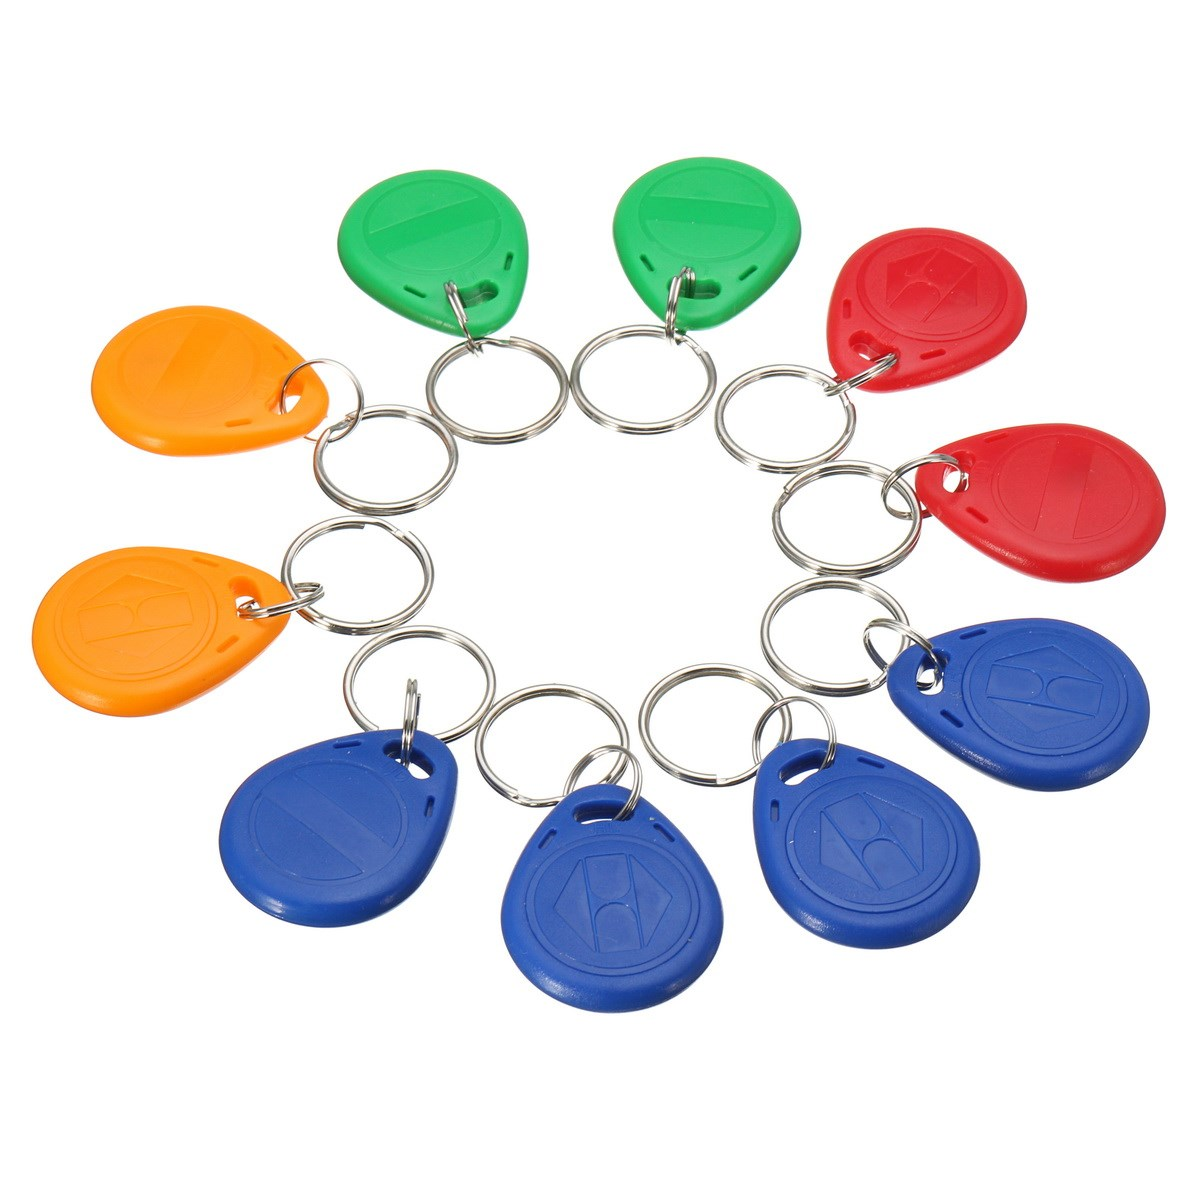 10pcs Handheld 125KHz RFID ID cards keyfob EM4305 access control card Tag(China (Mainland))